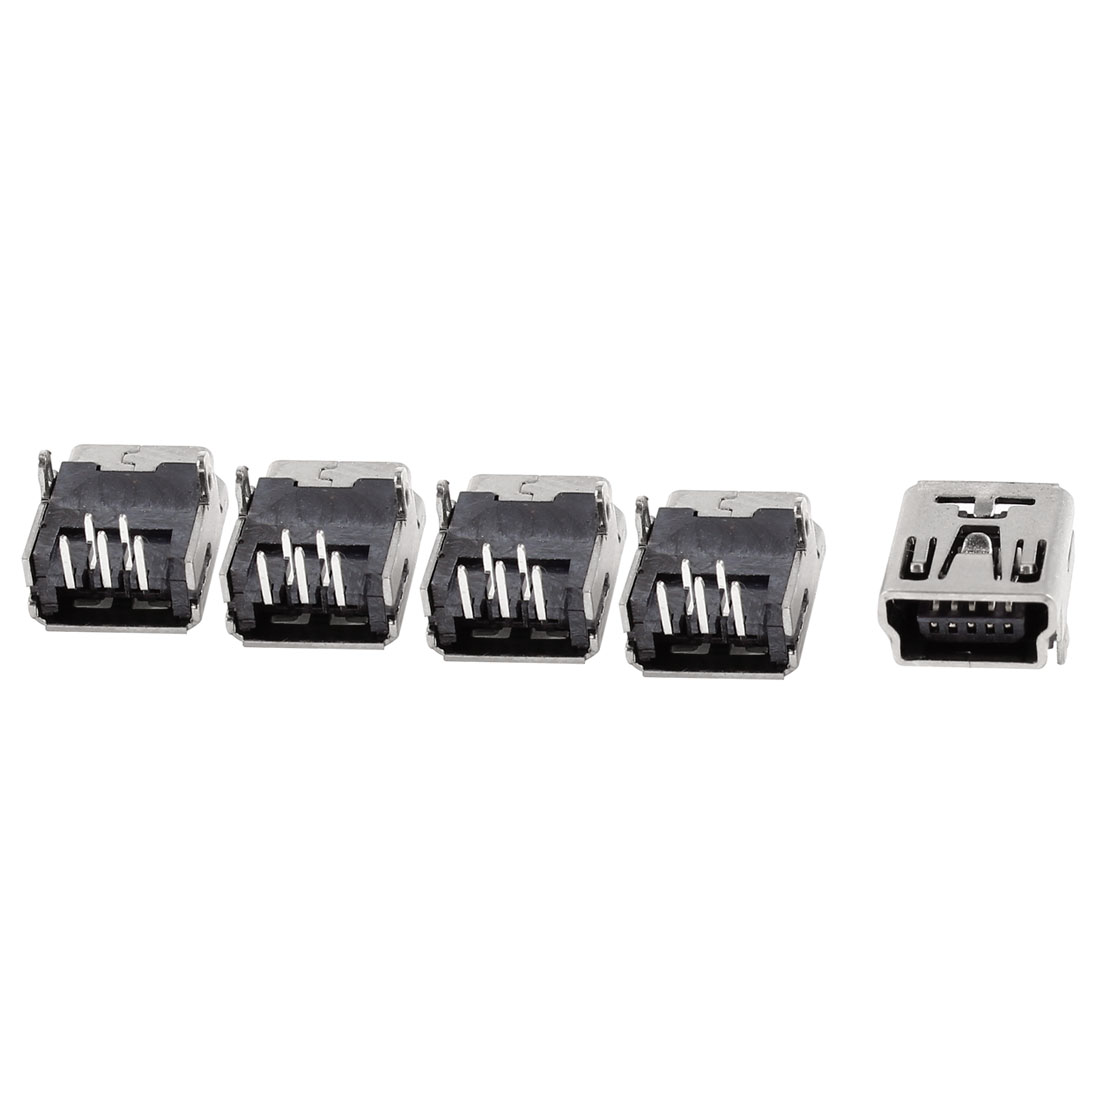 5 Pcs Right Angle PCB Mount 5pin USB Mini B Type Female Socket Connector